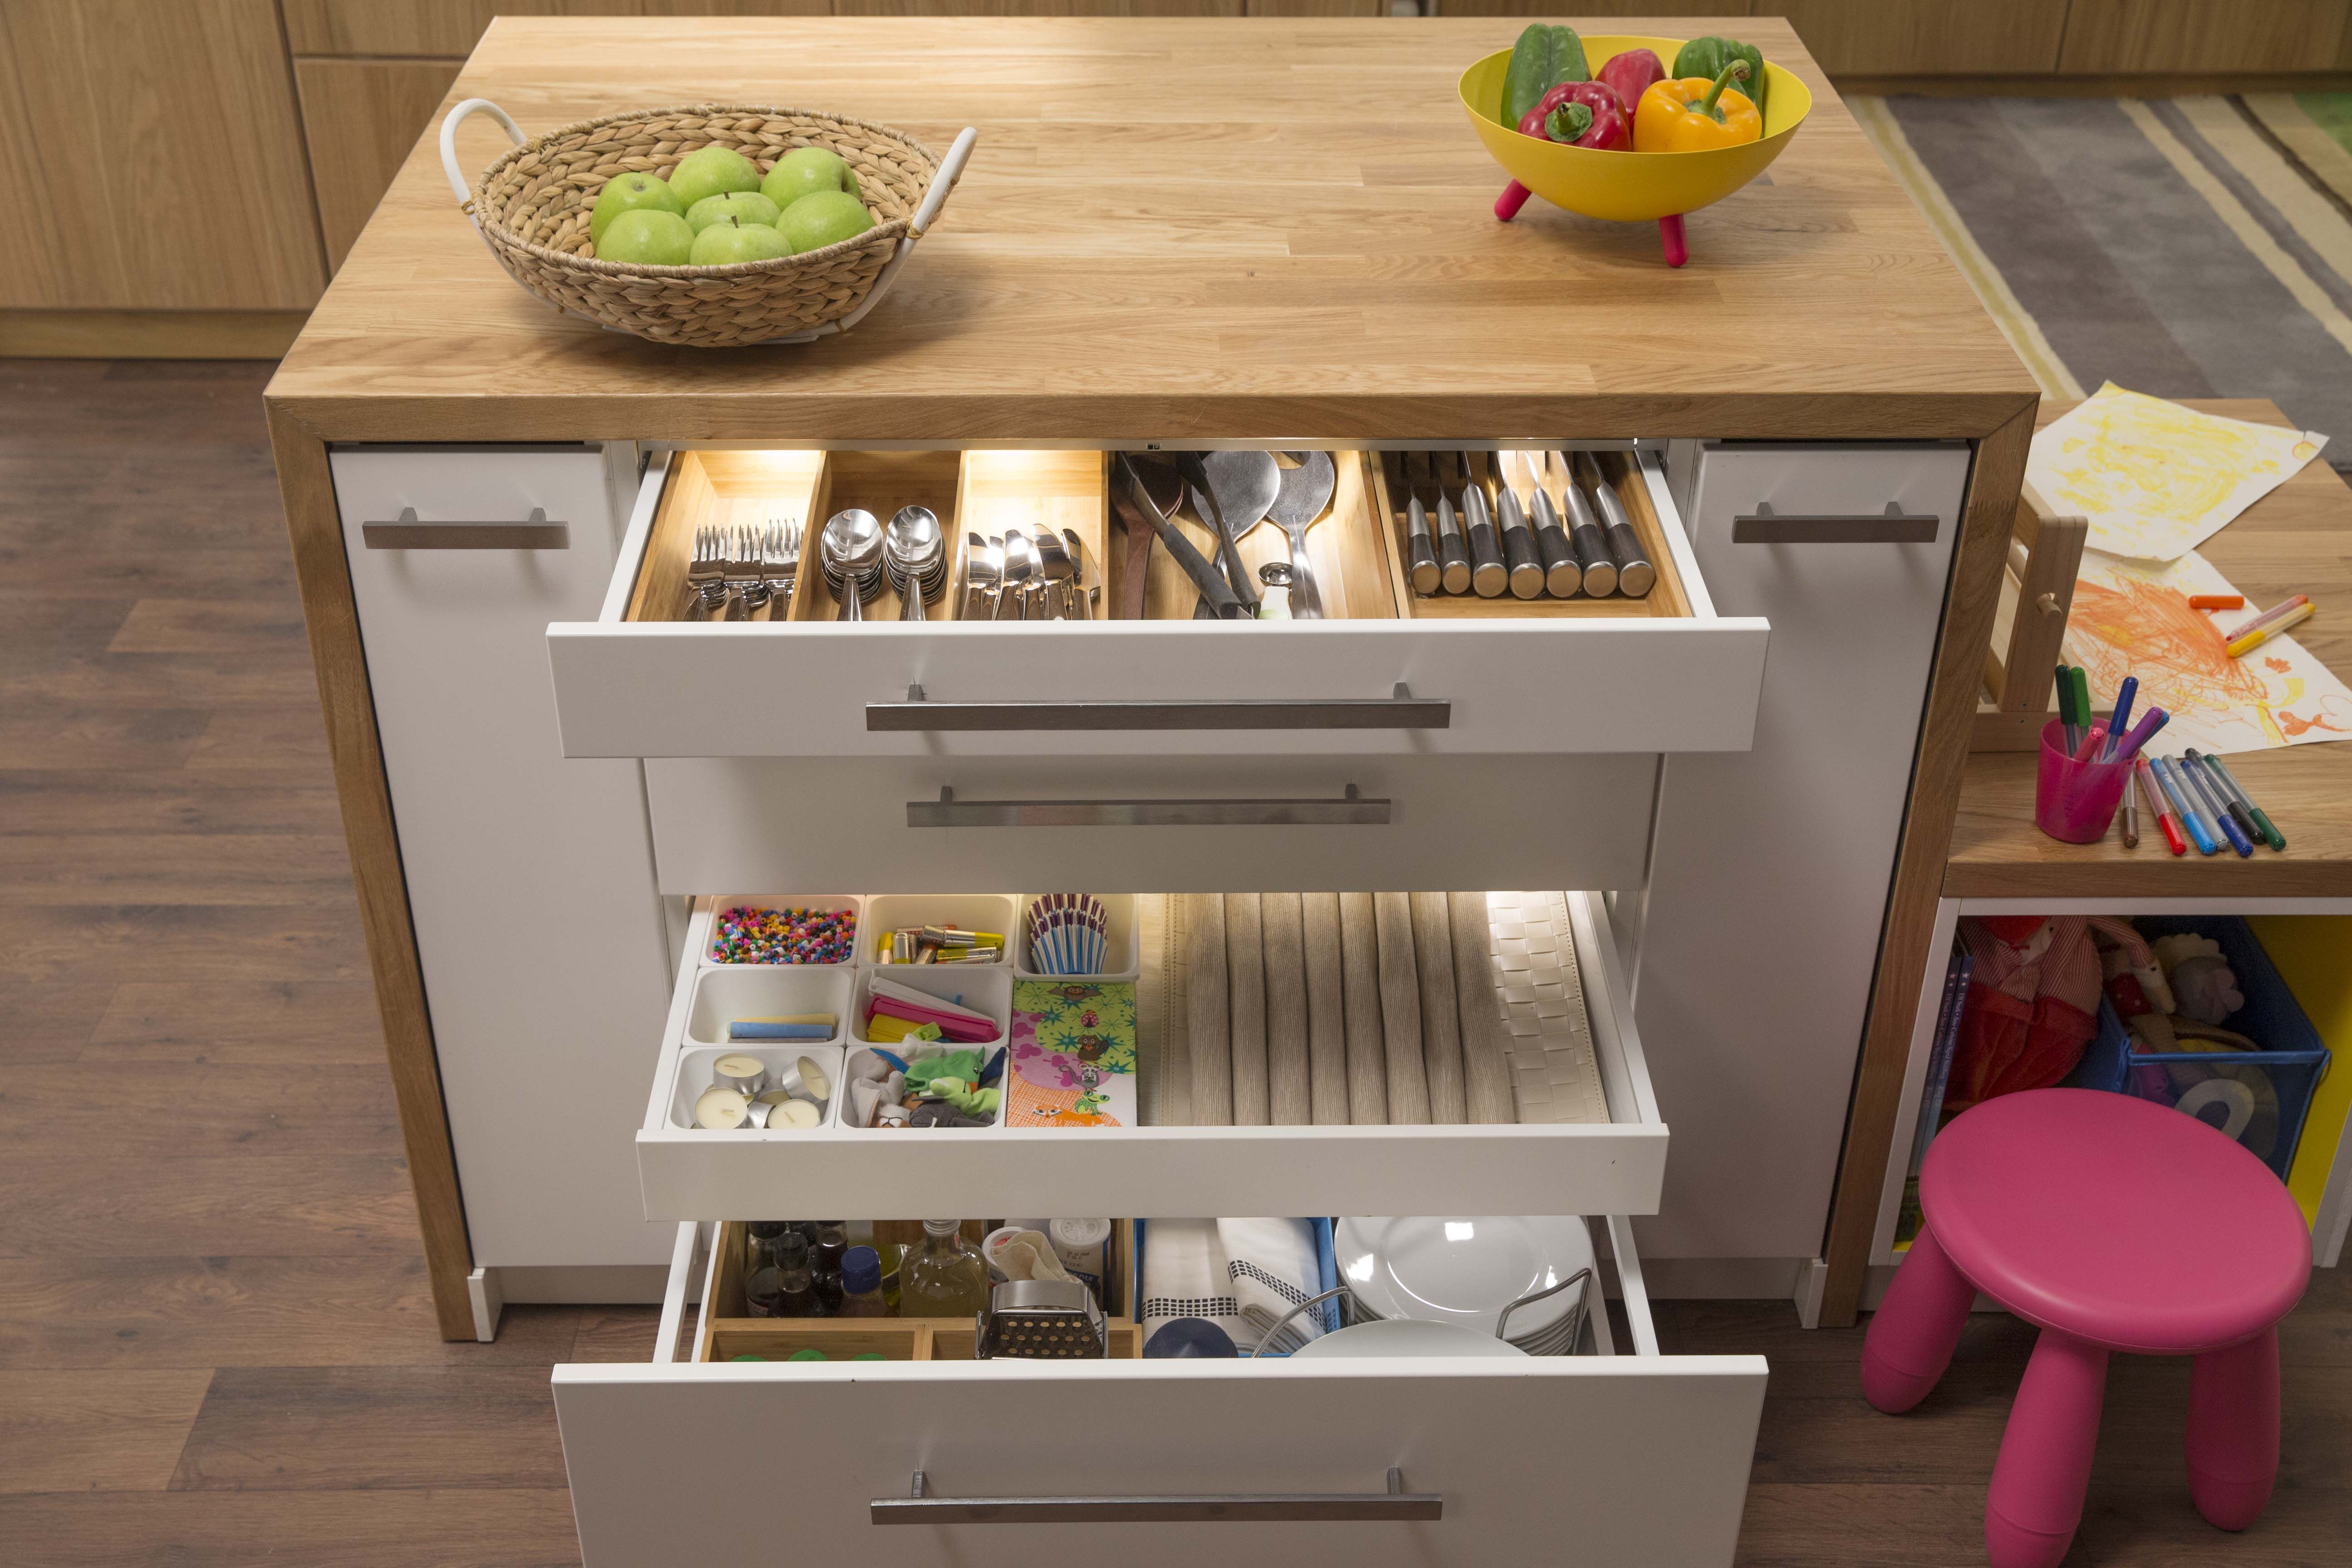 ikea kitchen METOD METOD: One new kitchen system, thousands of ...